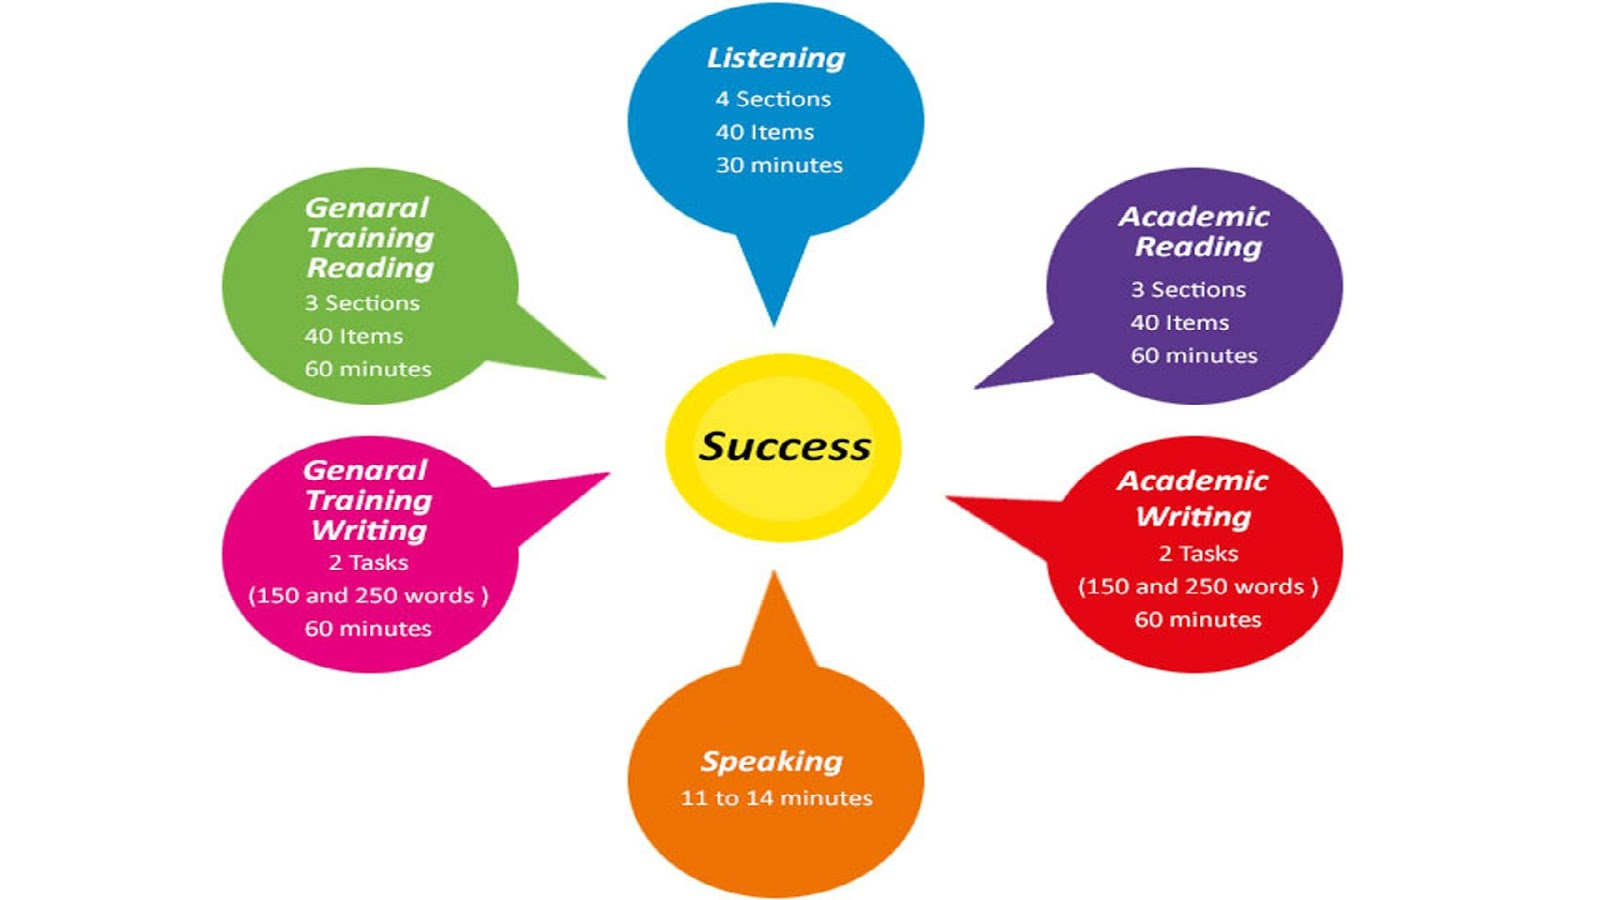 ielts listening Ielts listening test takes 30 minutes you will get approximately 20 minutes to listen to the tape and answer the questions, and 10 minutes allocated for you to transfer your answers from the question booklet to the answer sheet.